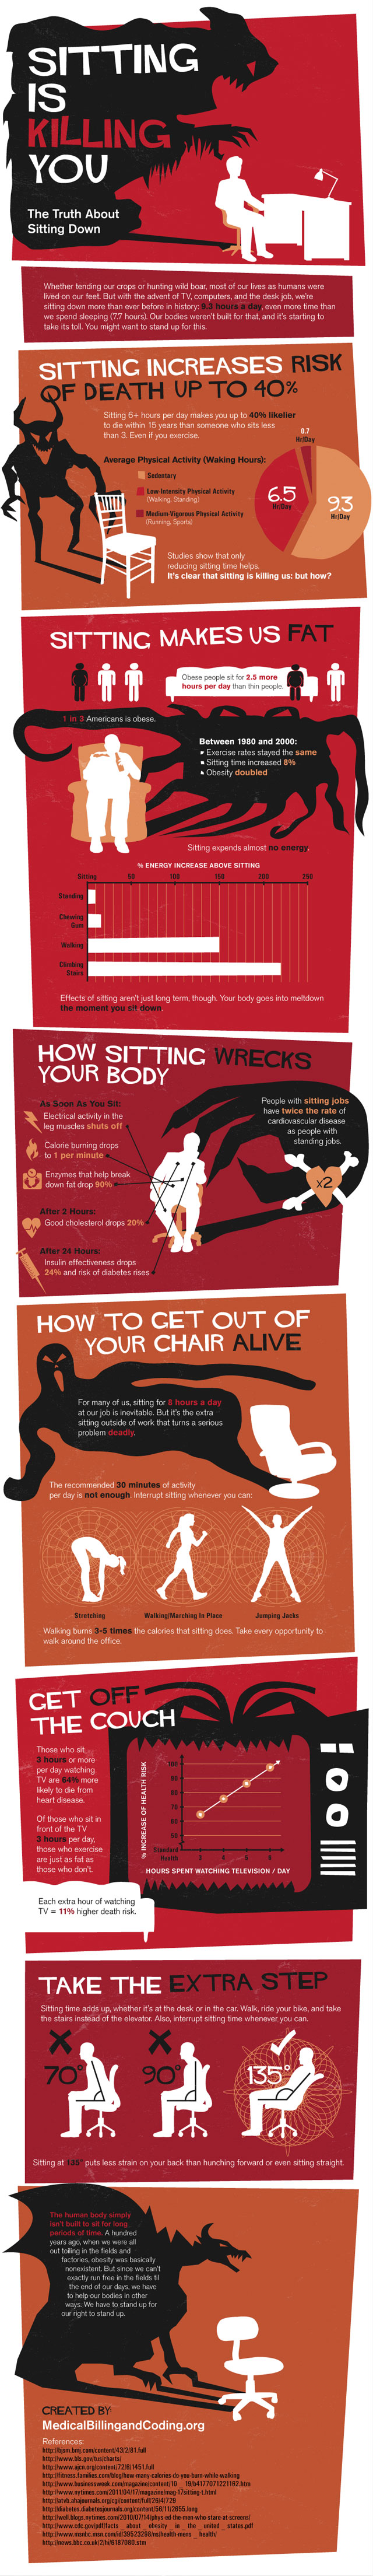 Sitting down is linked to bad health Infographic